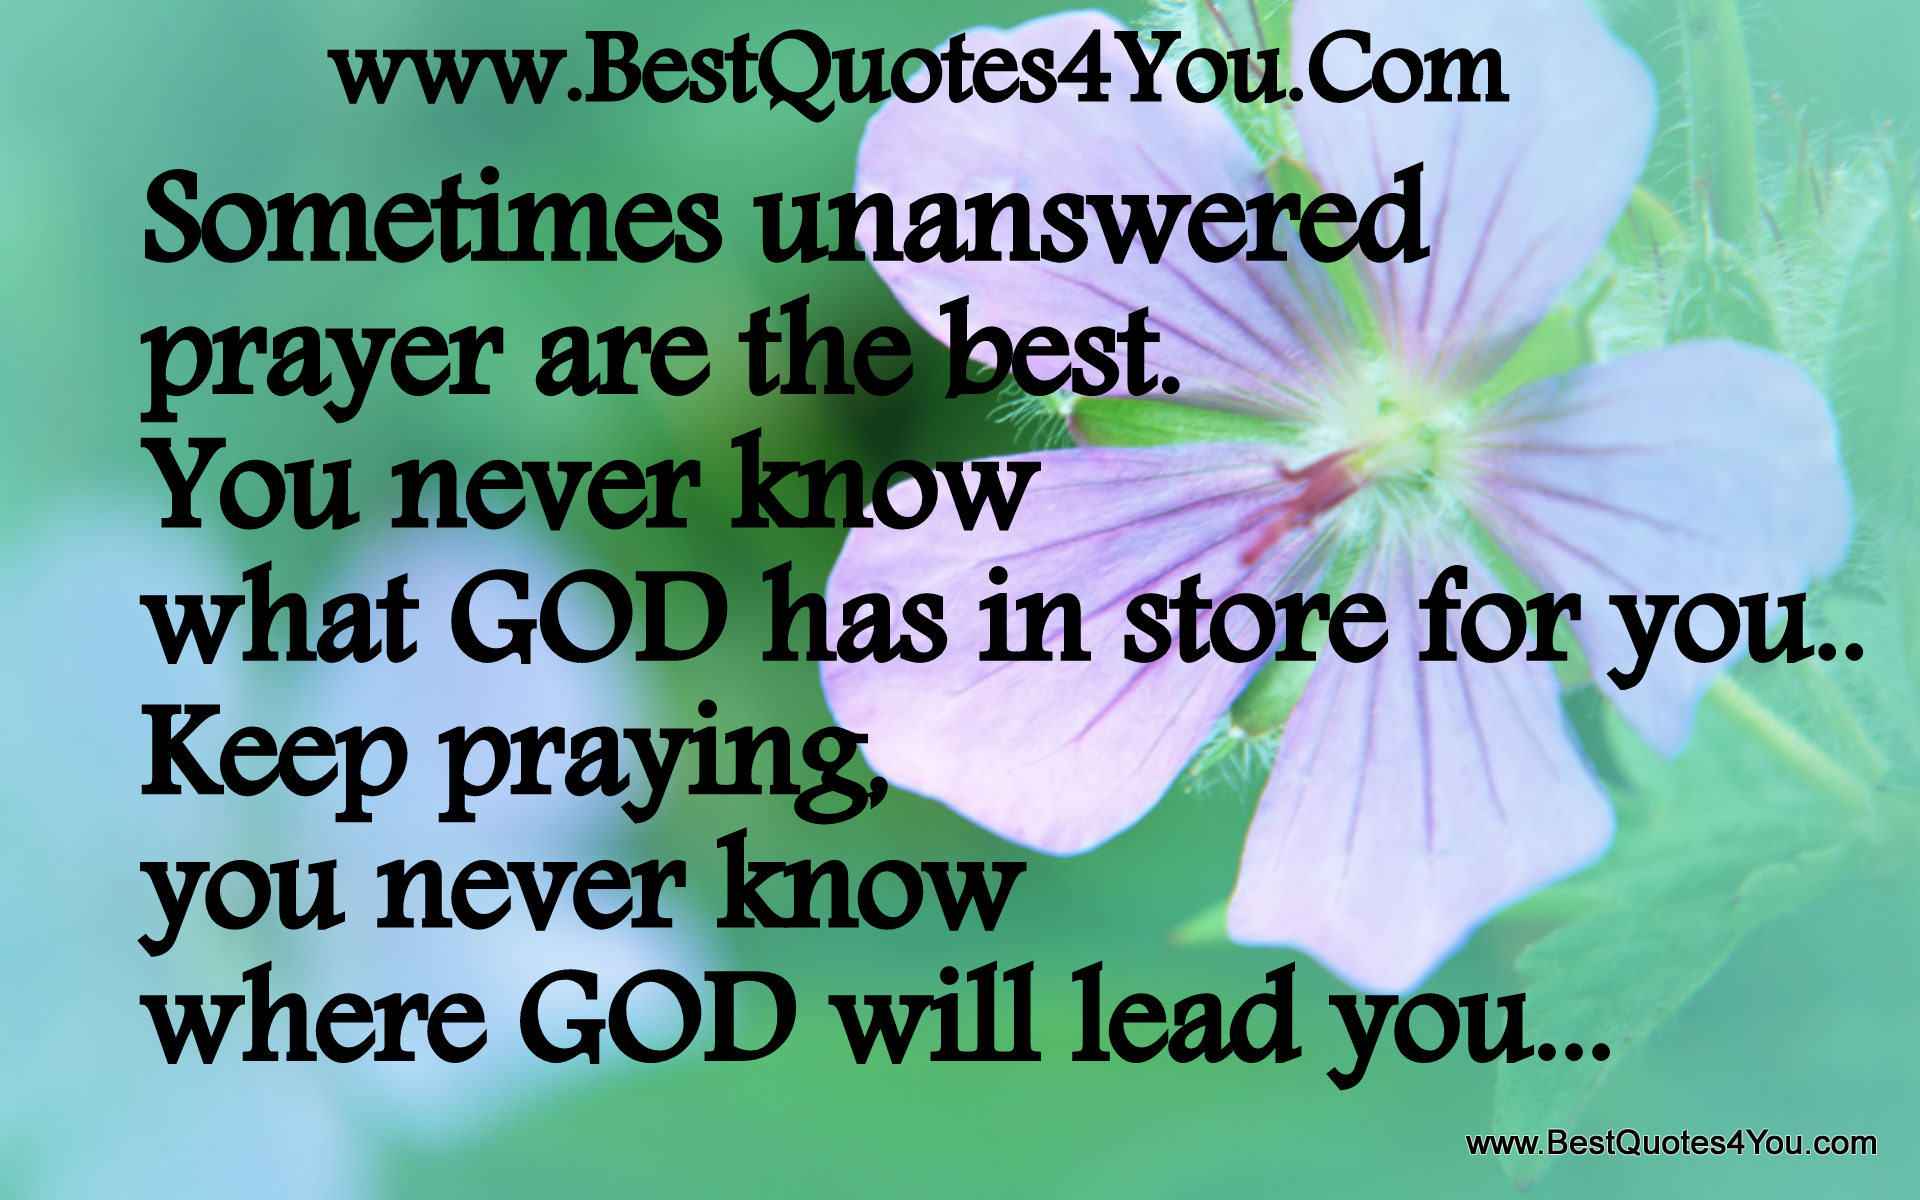 Sometimes Unanswered Prayer Are The Best You Never Know What God Has In Store For You Keep Praying You Never Know Where God Will Lead You Quotespictures Com